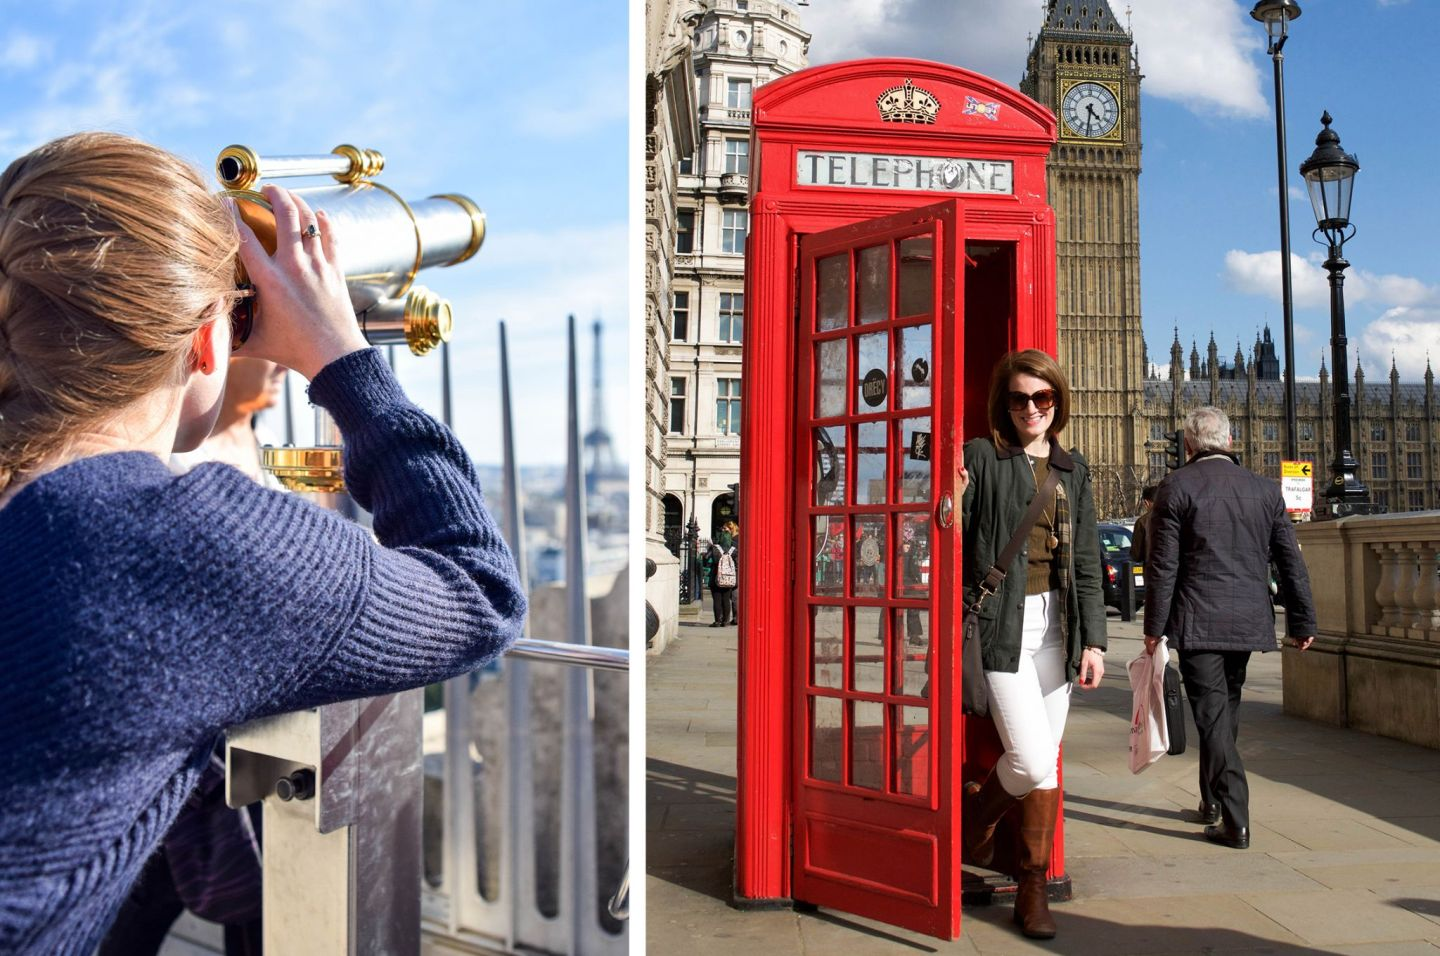 how i learned to love travel - learn to love travel - travel abroad - wanderlust - arc de triomphe - big ben - red telephone in london